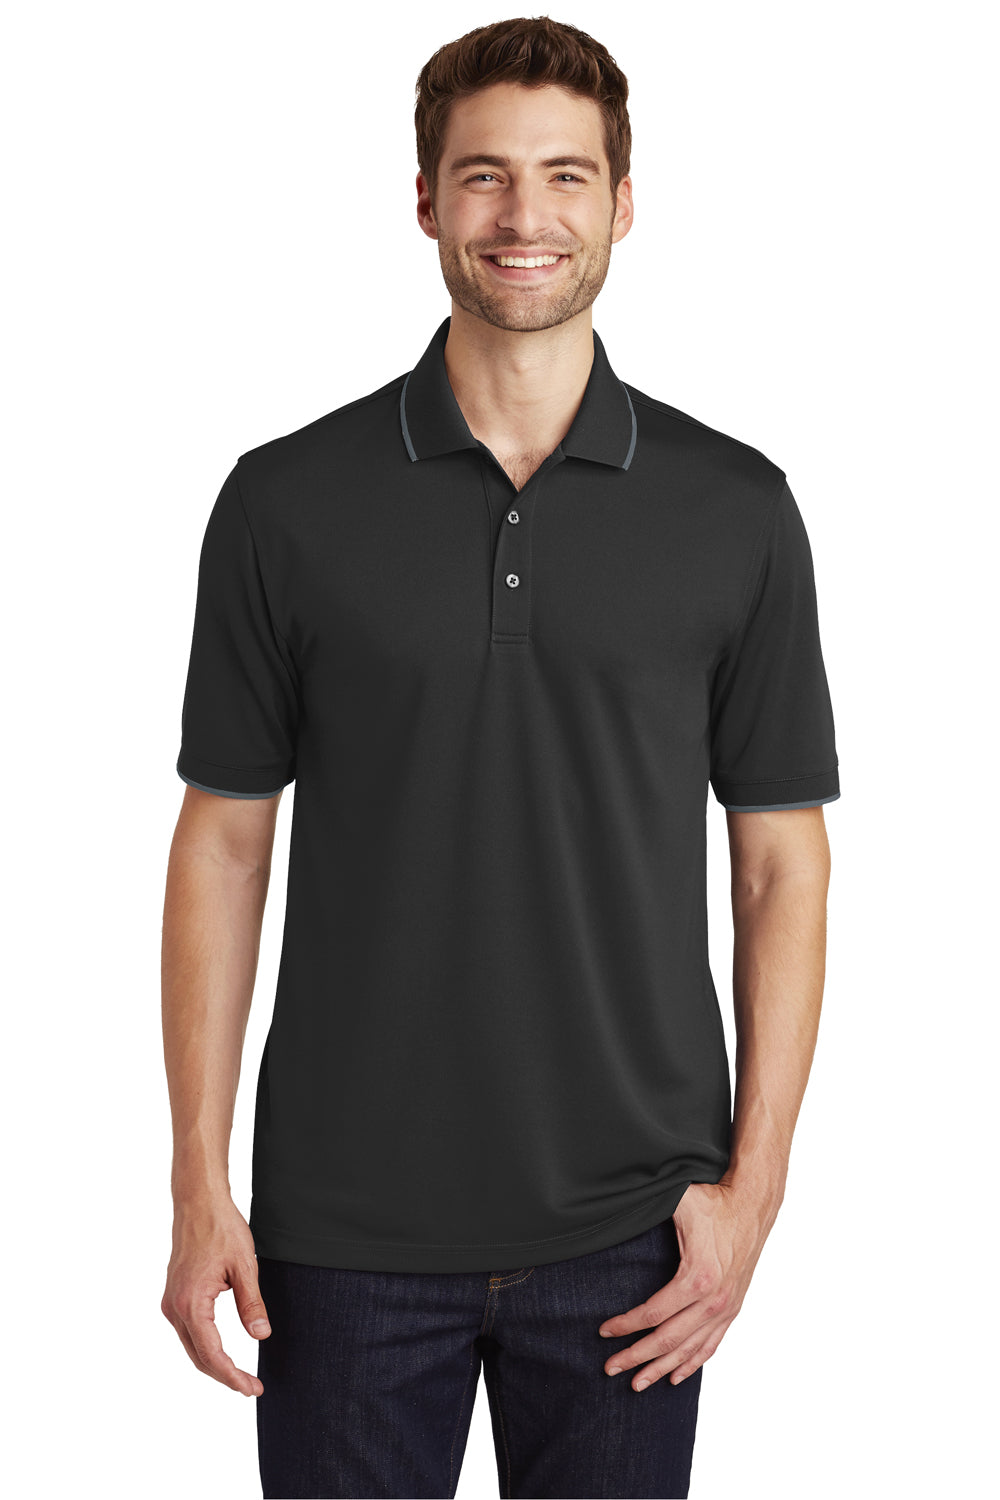 Port Authority K111 Mens Dry Zone Moisture Wicking Short Sleeve Polo Shirt Black/Graphite Grey Front